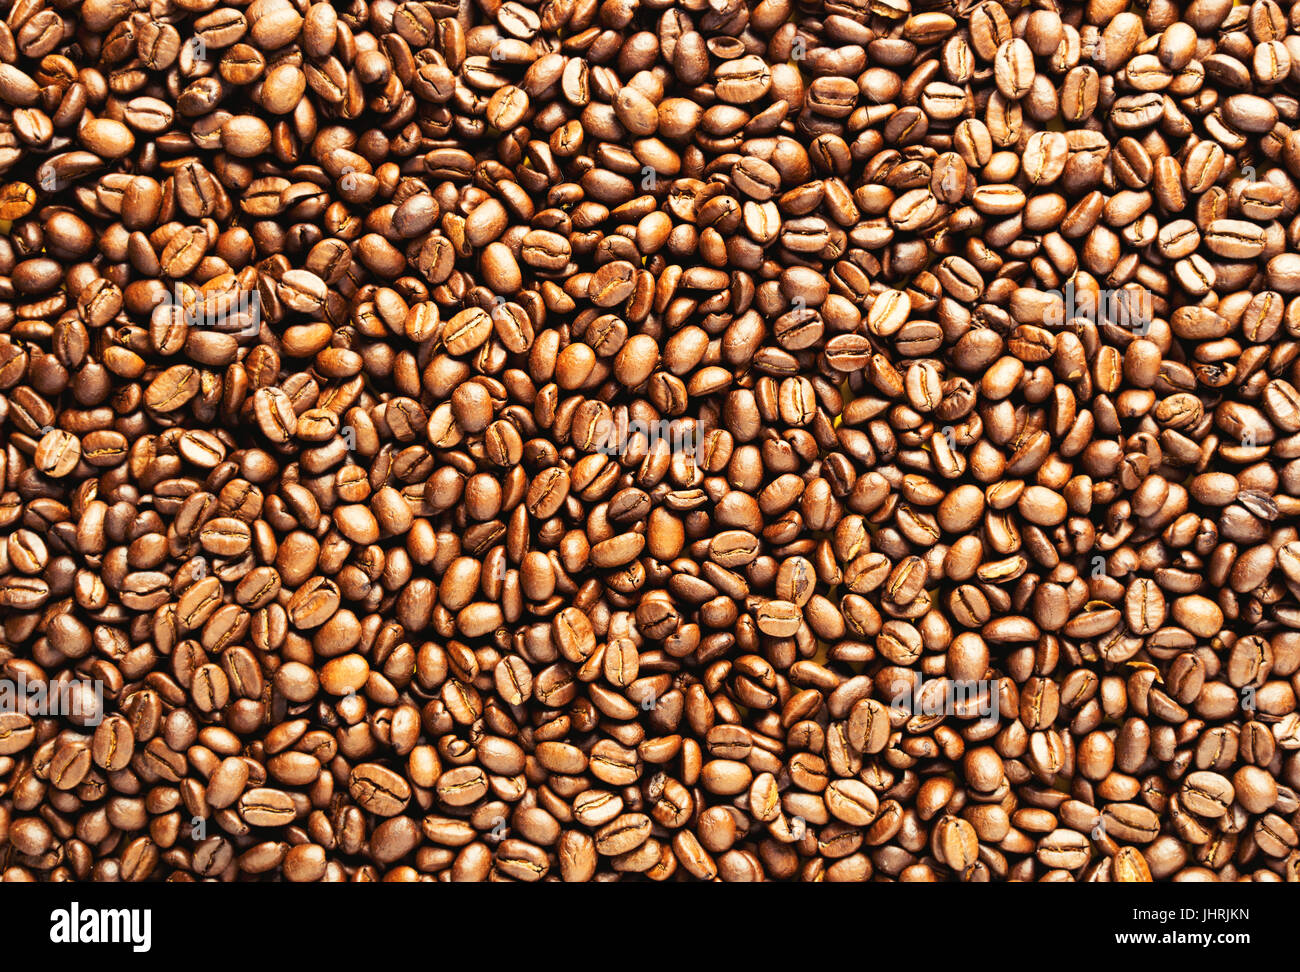 Coffee bean background. Roasted coffee beans background. - Stock Image